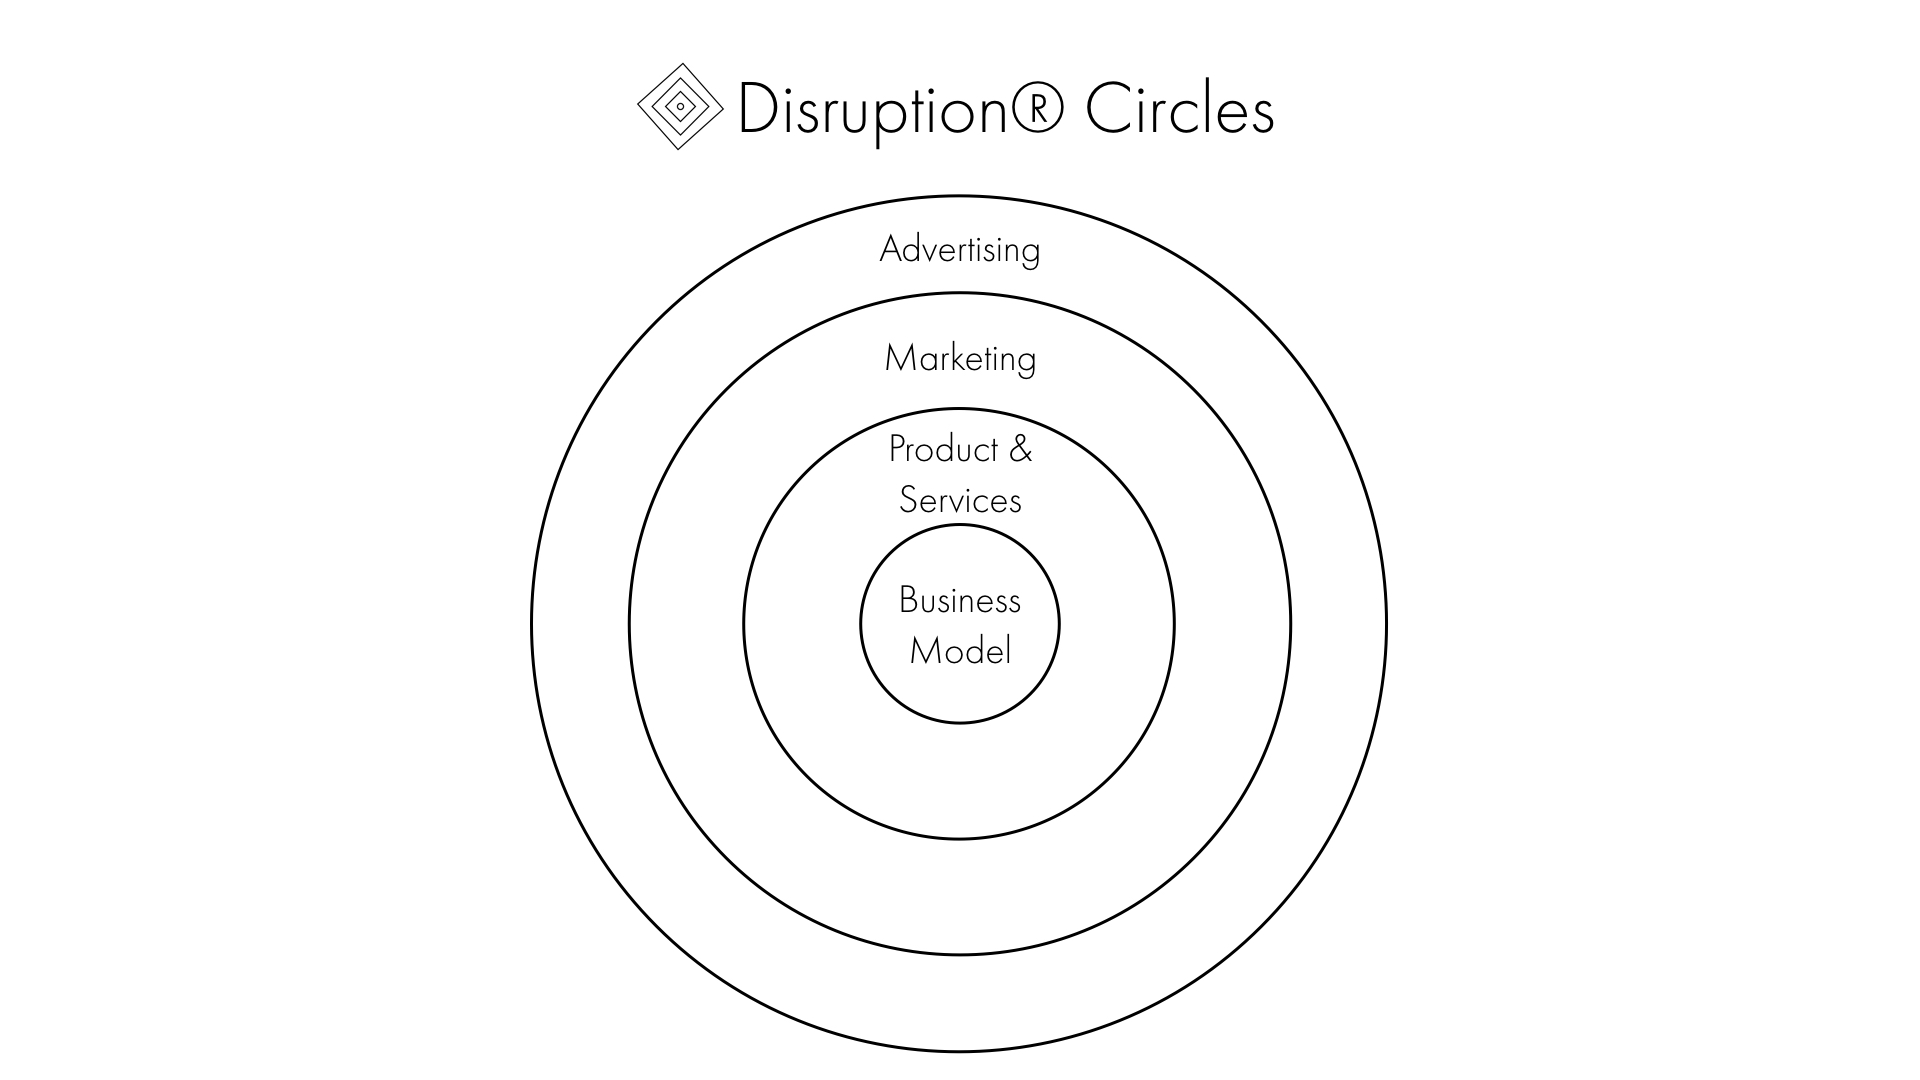 Disruption® Circles